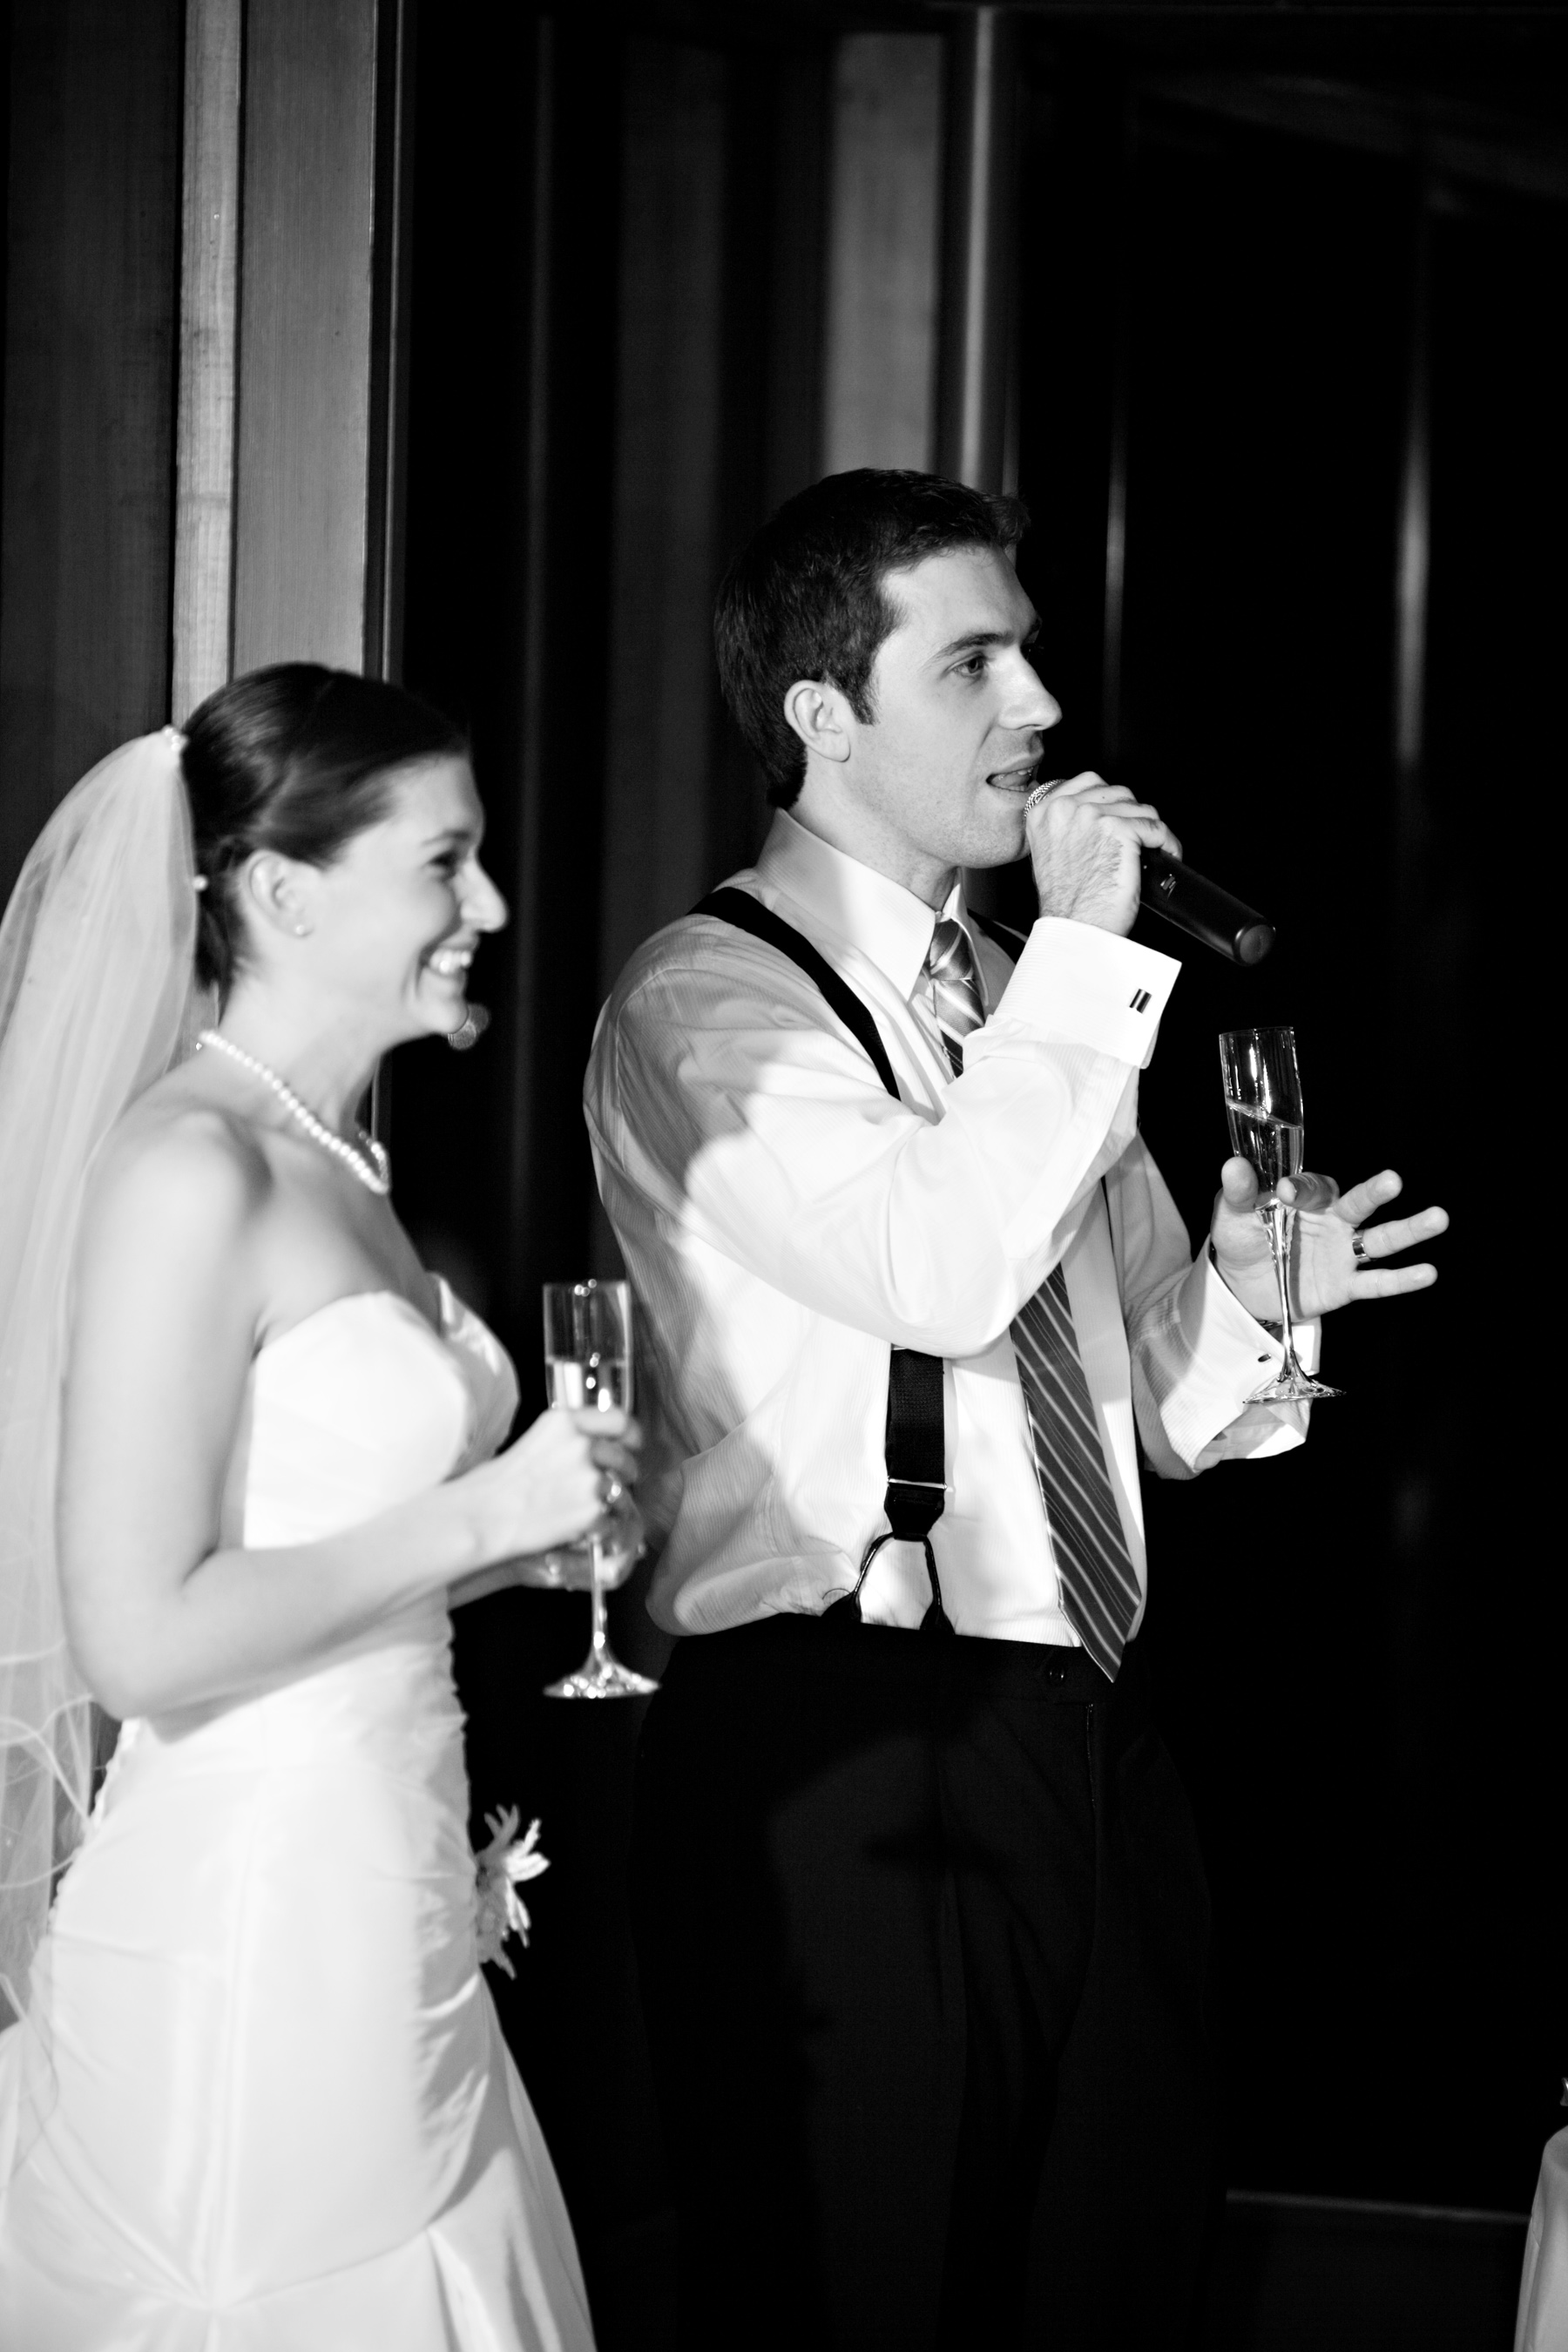 Groom giving wedding speech standing next to his bride.